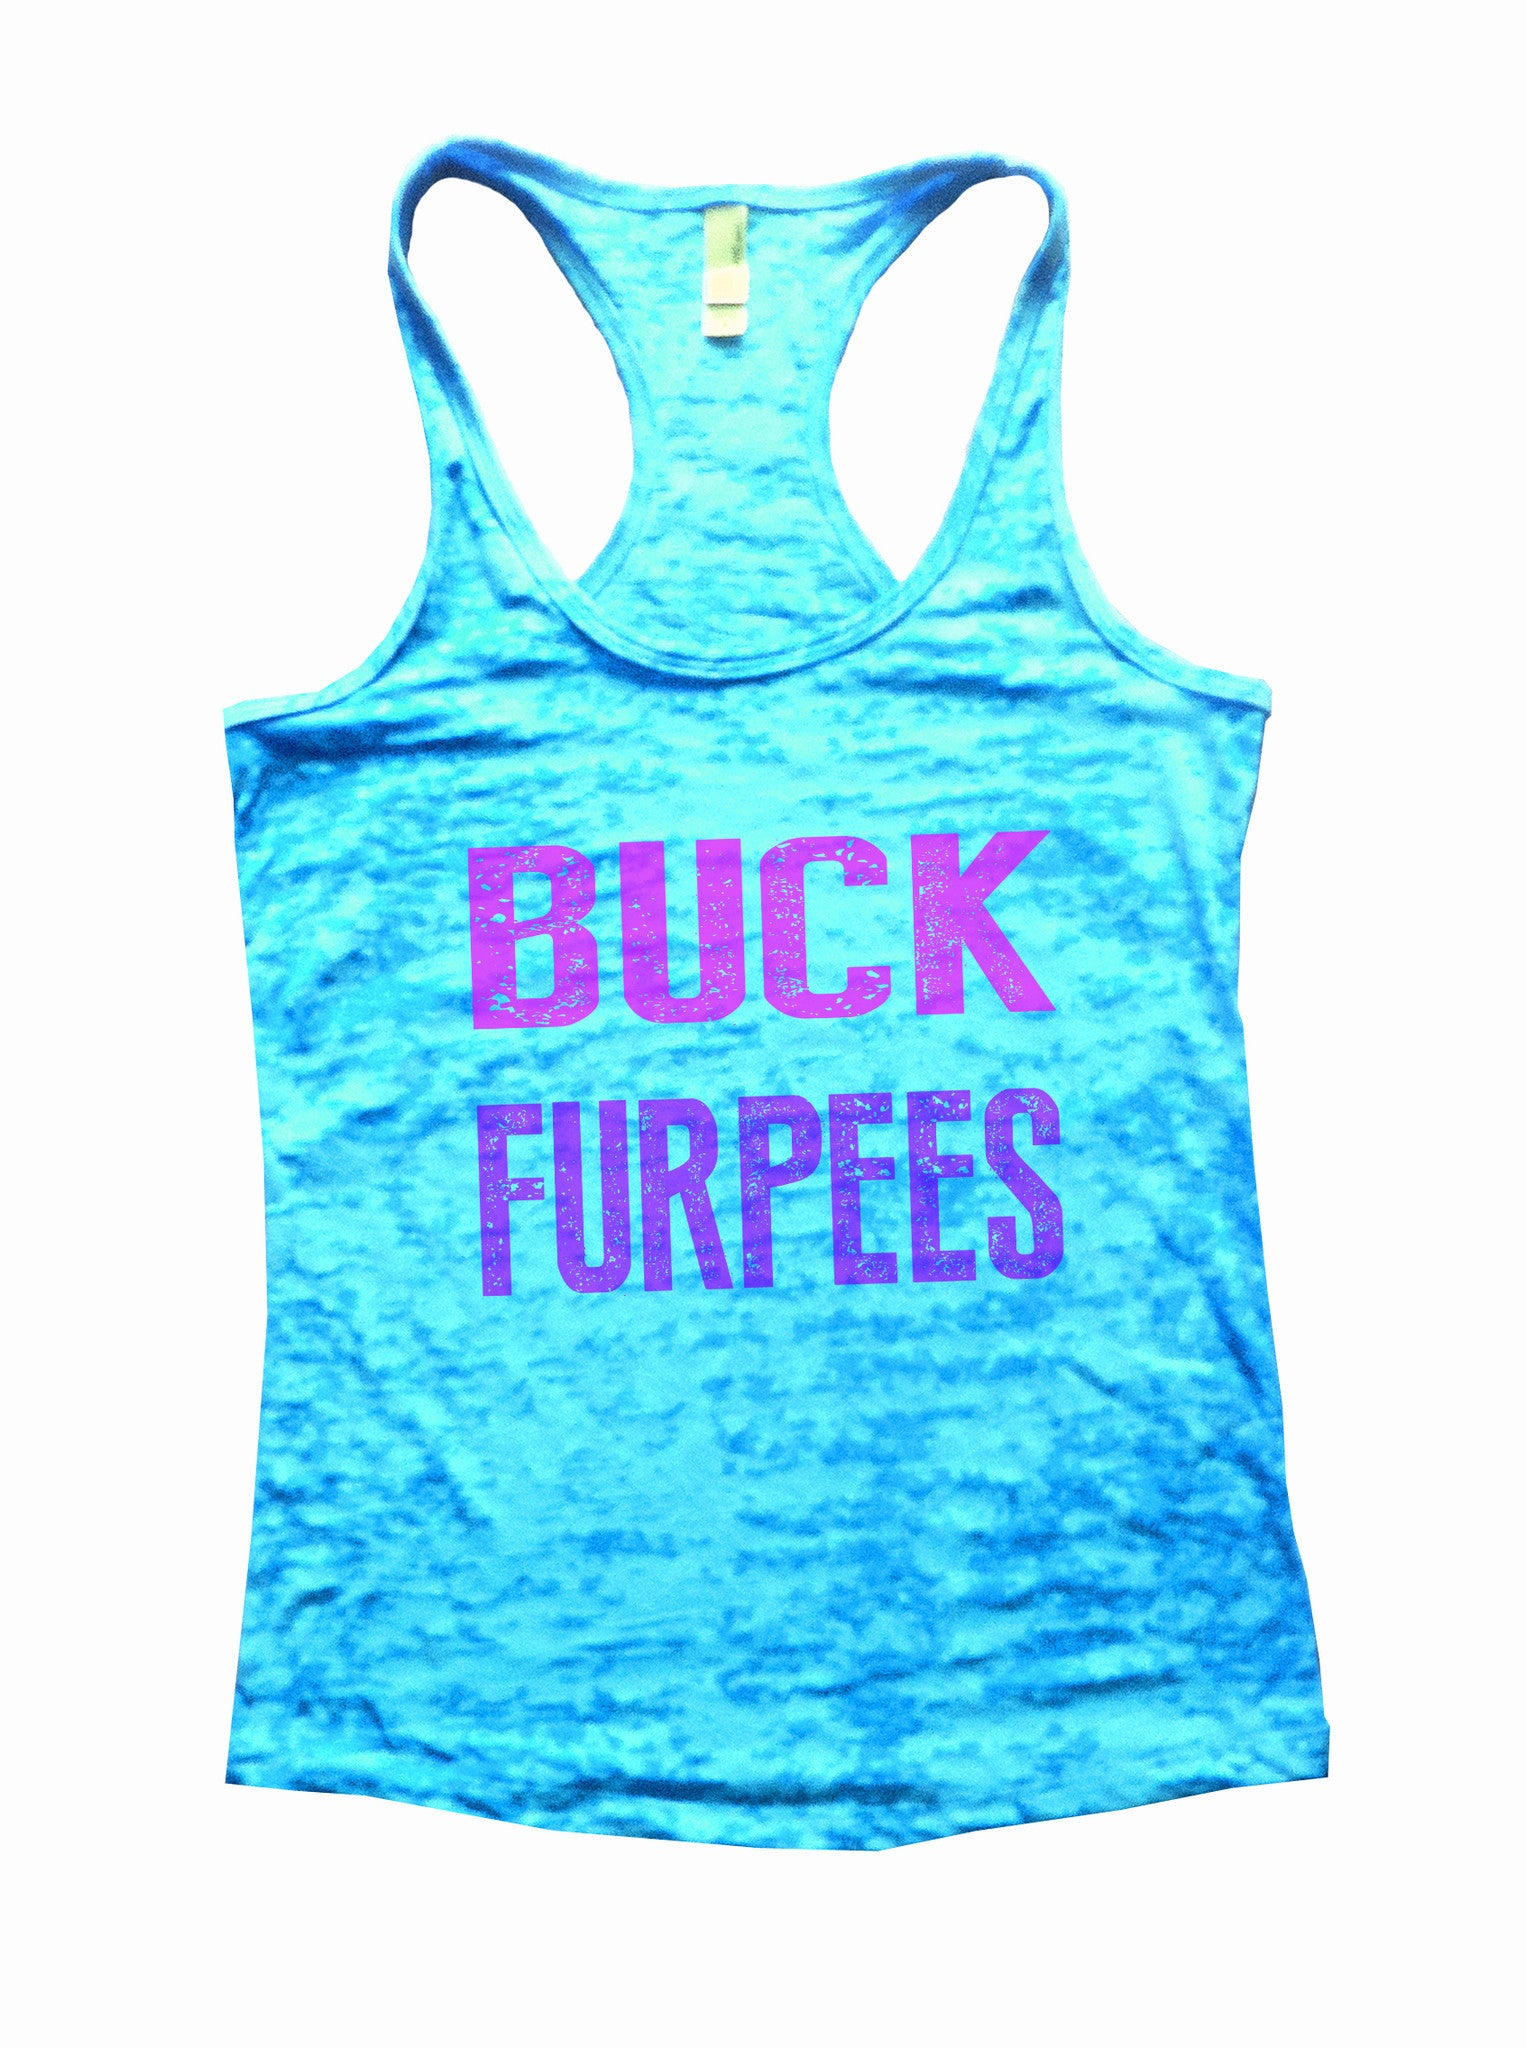 Buck Furpees Burnout Tank Top By BurnoutTankTops.com - 562 - Funny Shirts Tank Tops Burnouts and Triblends  - 1